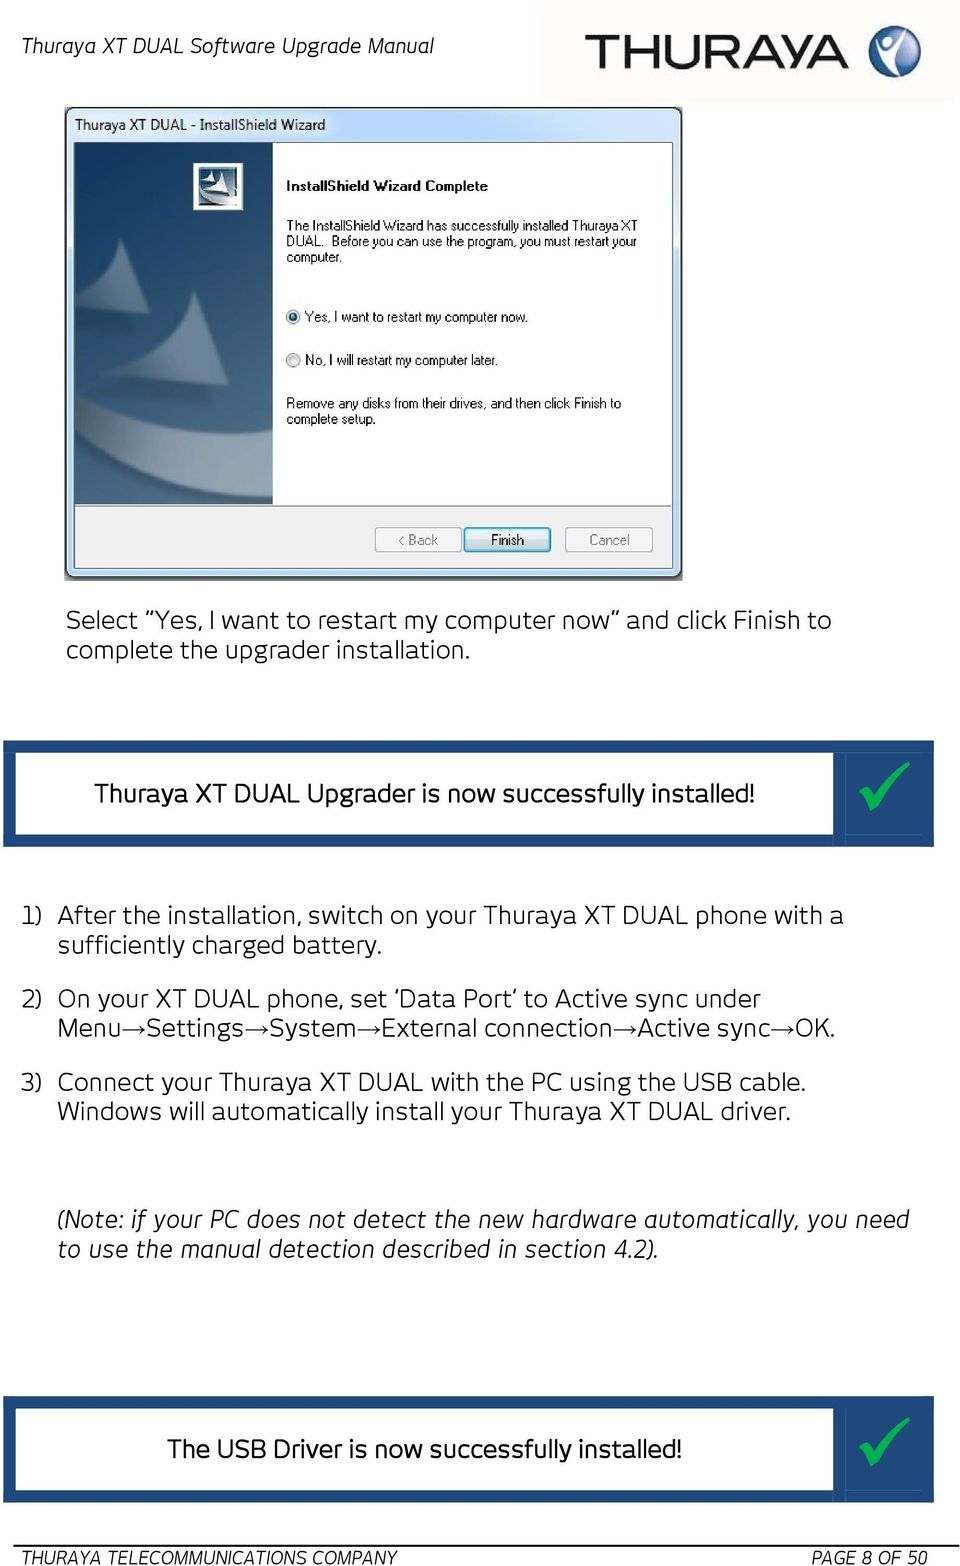 2) On your XT DUAL phone, set Data Port to Active sync under Menu Settings System External connection Active sync OK. 3) Connect your Thuraya XT DUAL with the PC using the USB cable.